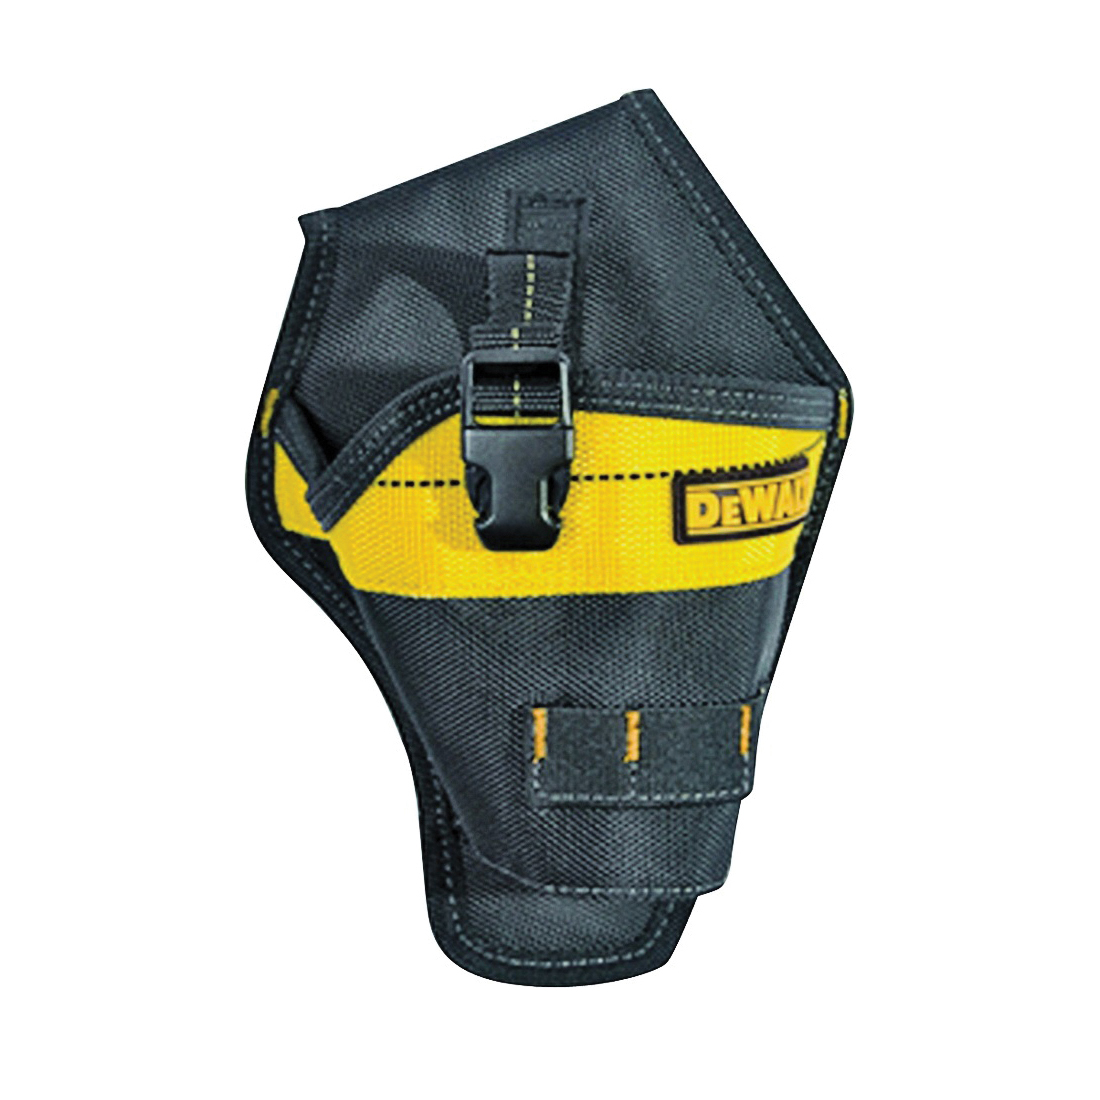 Picture of CLC DG5121 Impact Driver Holster, Ballistic Poly Fabric, 12-1/2 in W, 7 in H